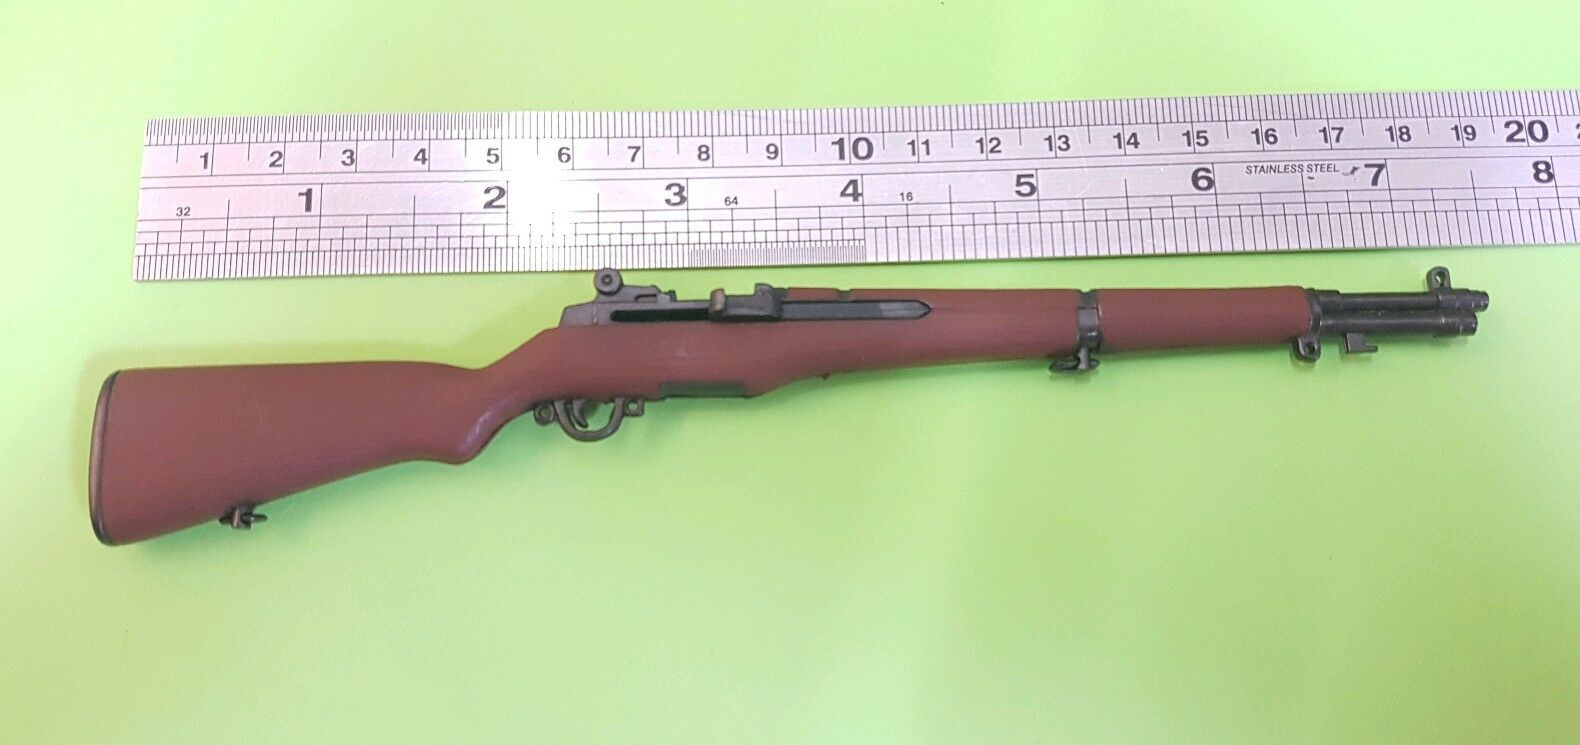 1 6 scale WWII and Vietnam War U.S ARMY M-1 Rifle weapon gun  for 12 inch figure